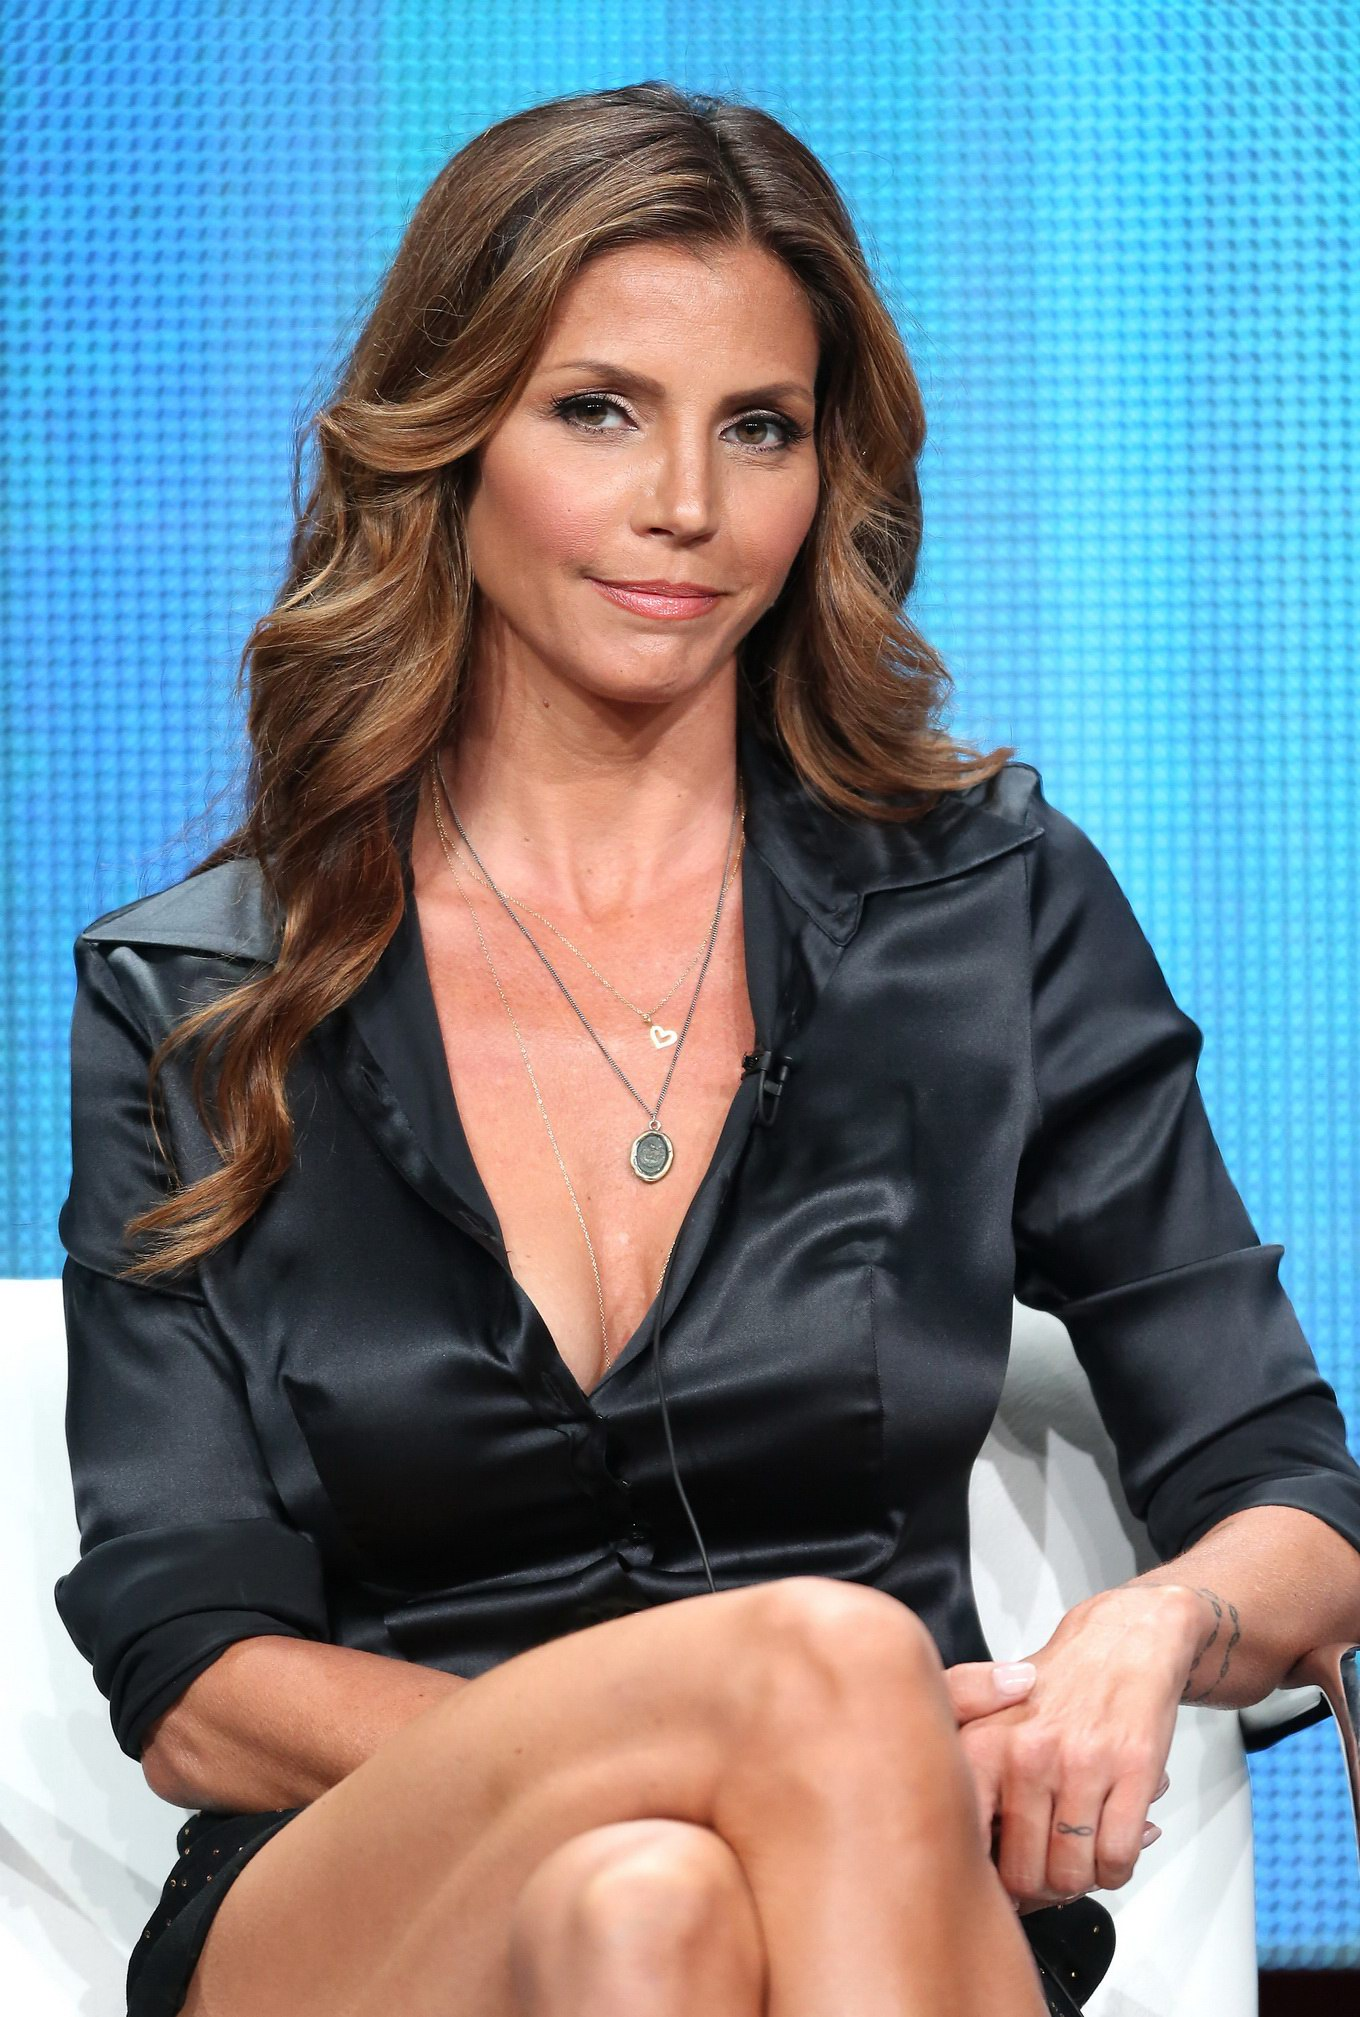 All became Charisma carpenter cleavage cannot be!